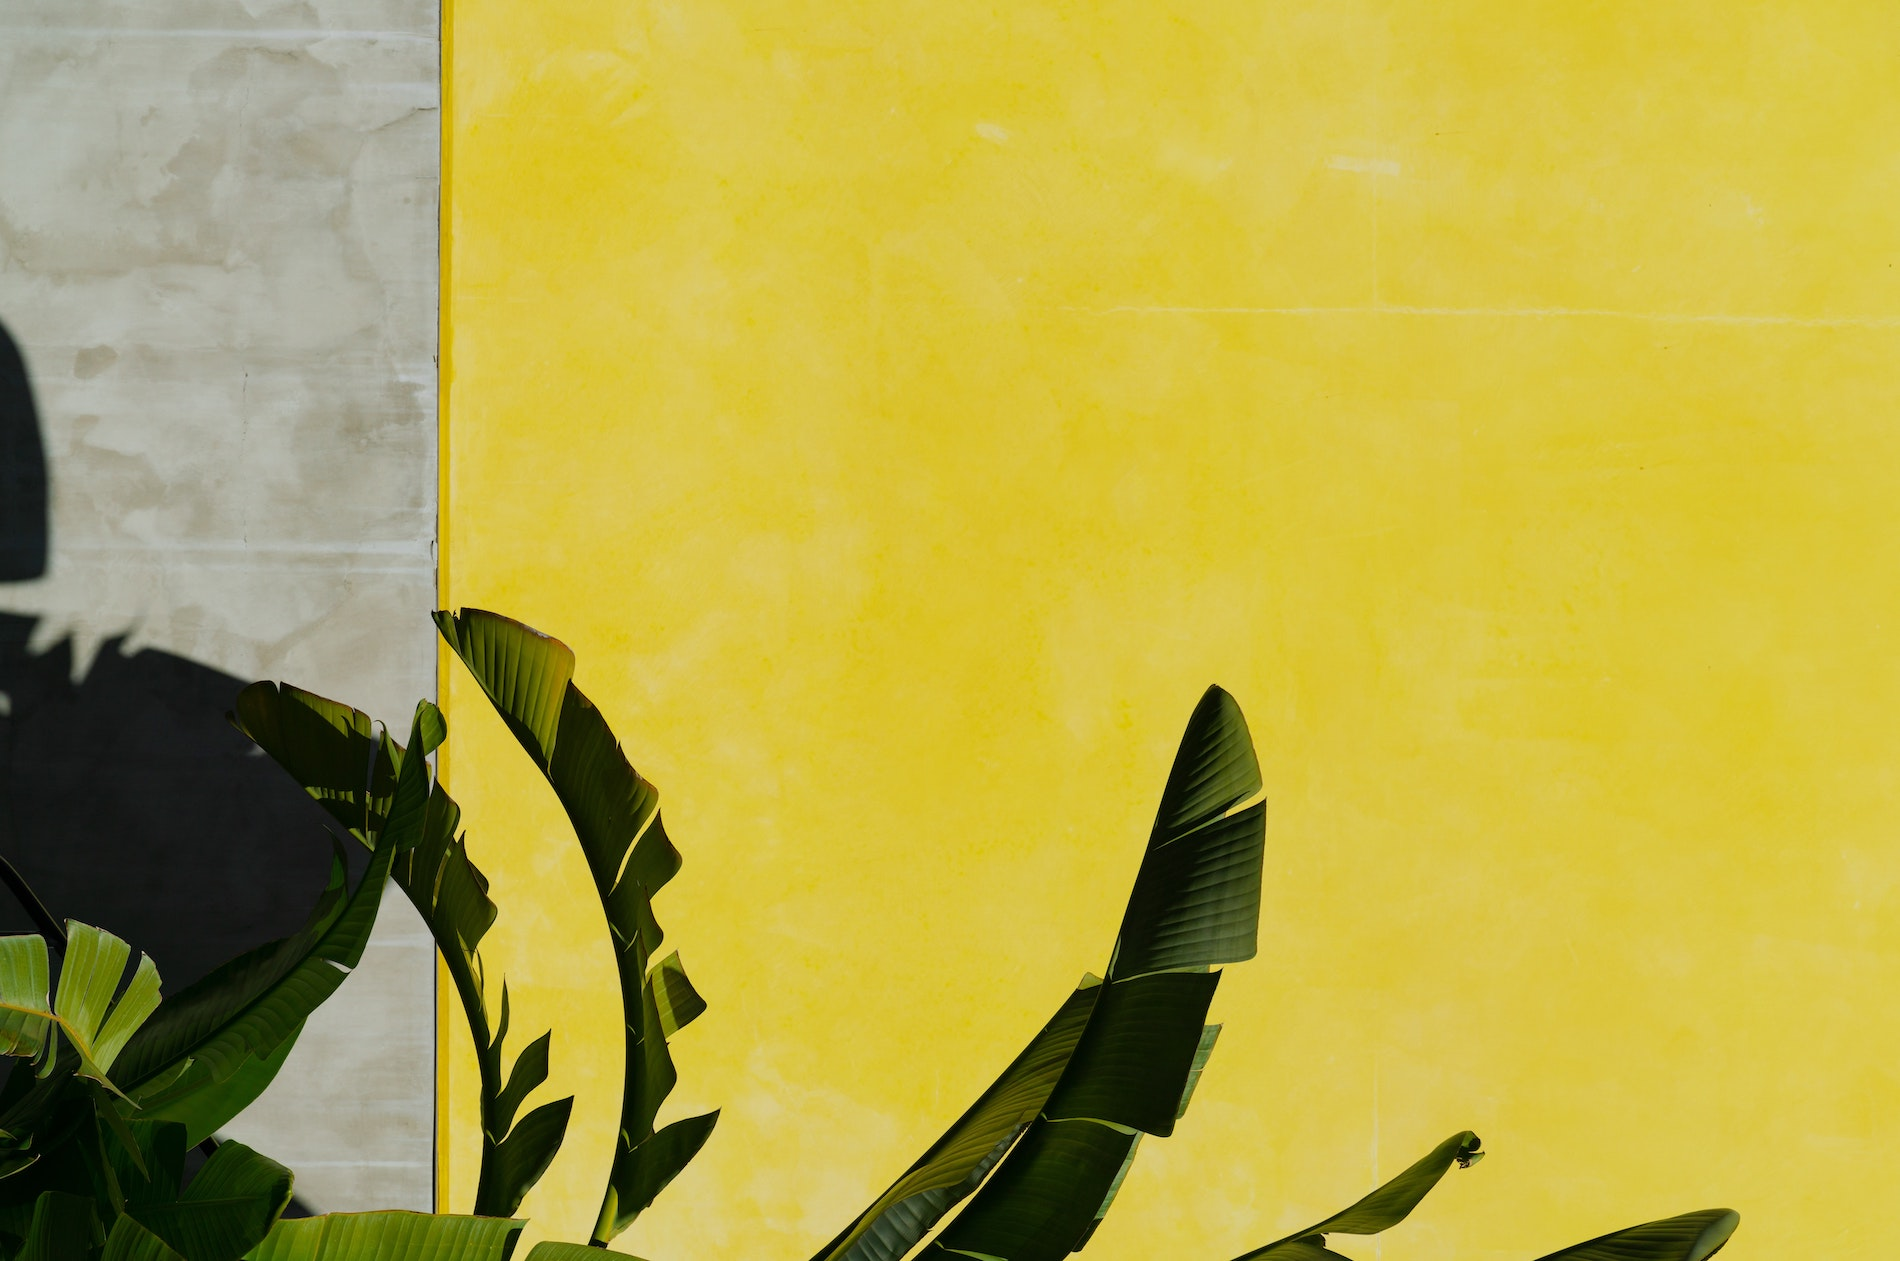 modern and minimal art design photo of green living leaves against natural cement wall